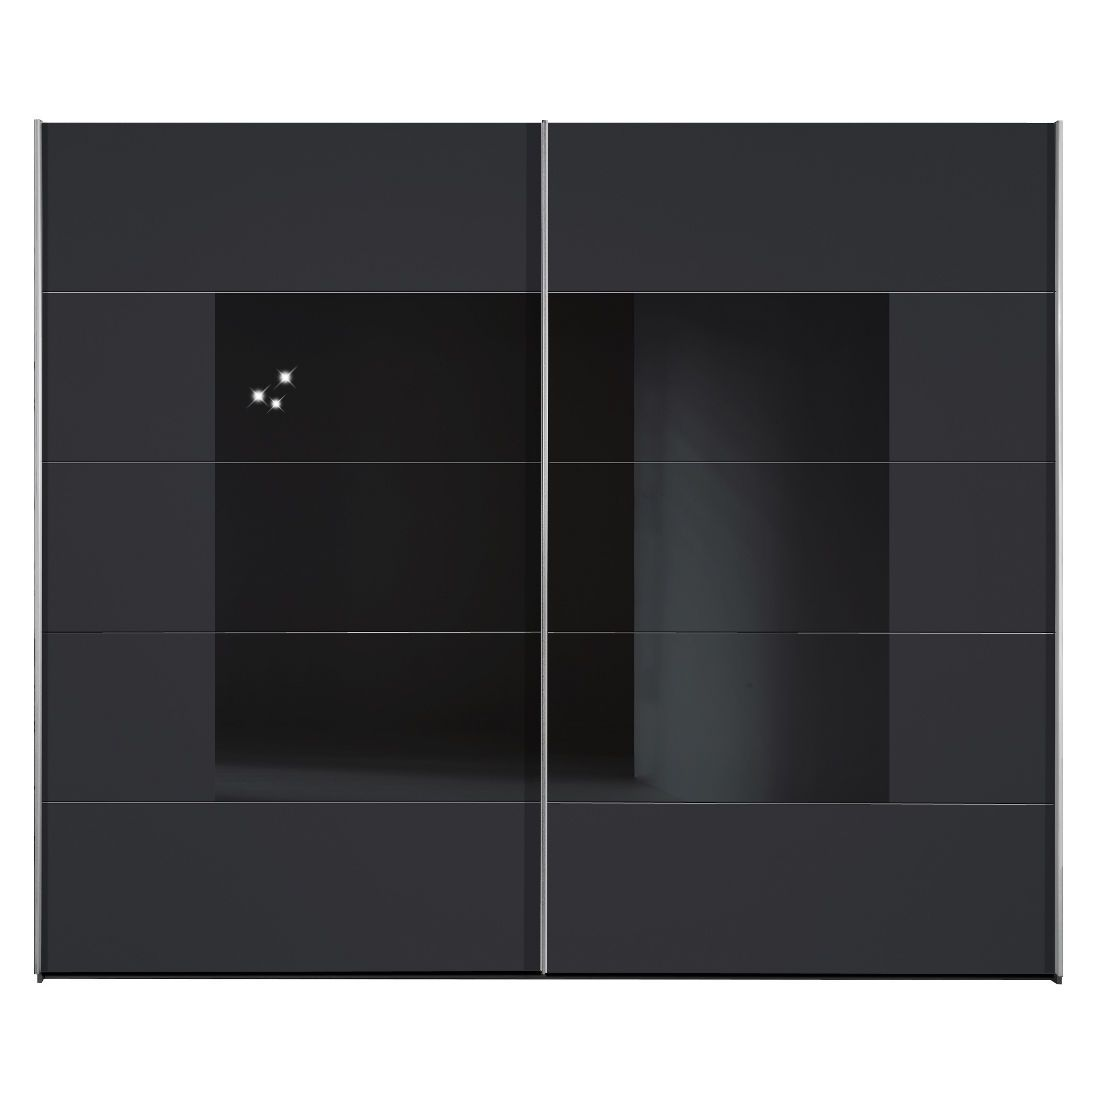 shuffle schrank schwarz mit schwarzem glas 252cm. Black Bedroom Furniture Sets. Home Design Ideas